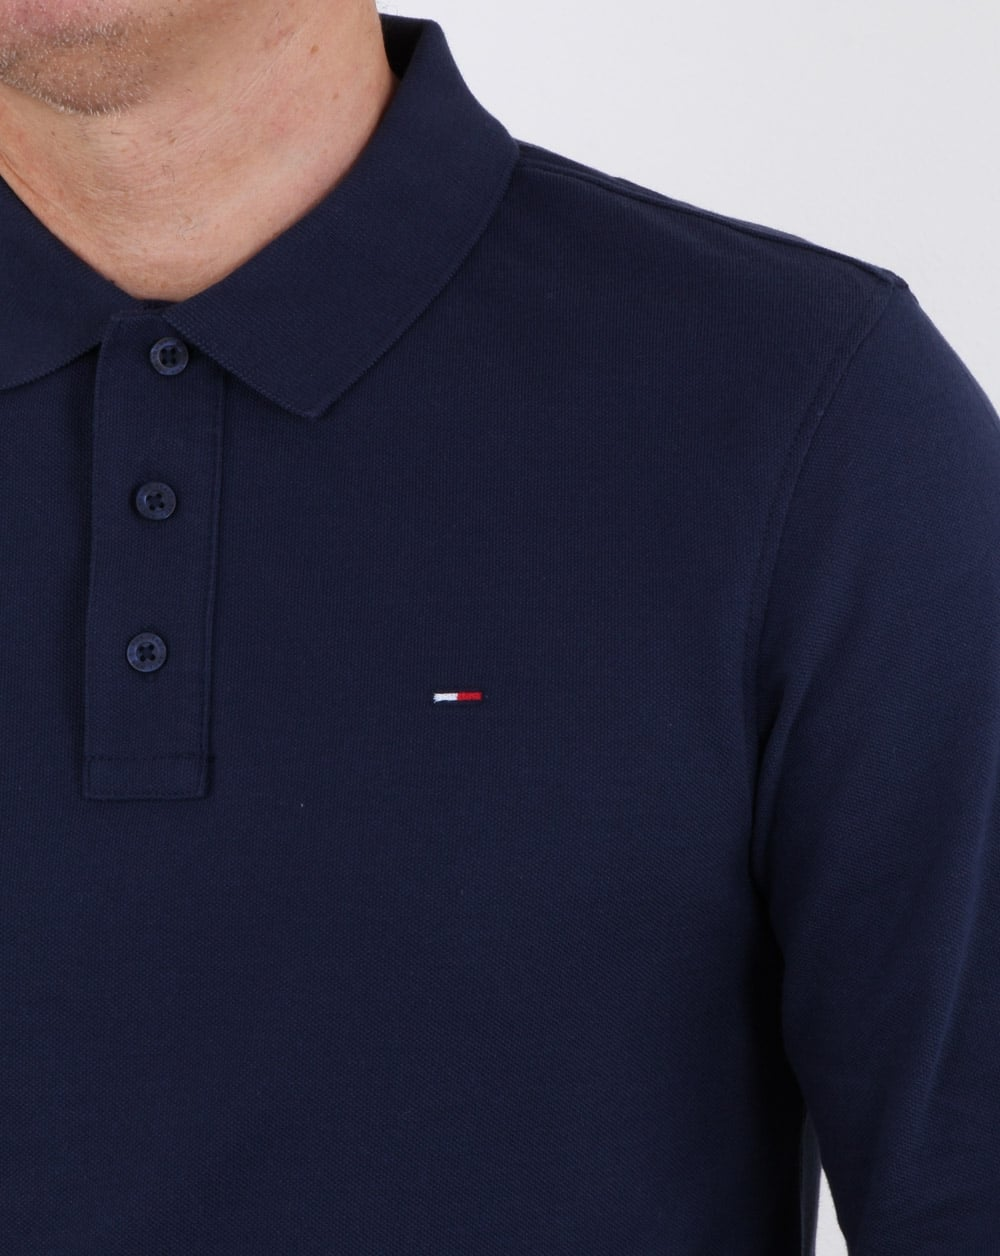 fe35e68c Tommy Hilfiger Long Sleeve Polo Shirt Navy, Mens, Cotton, Long Sleeve